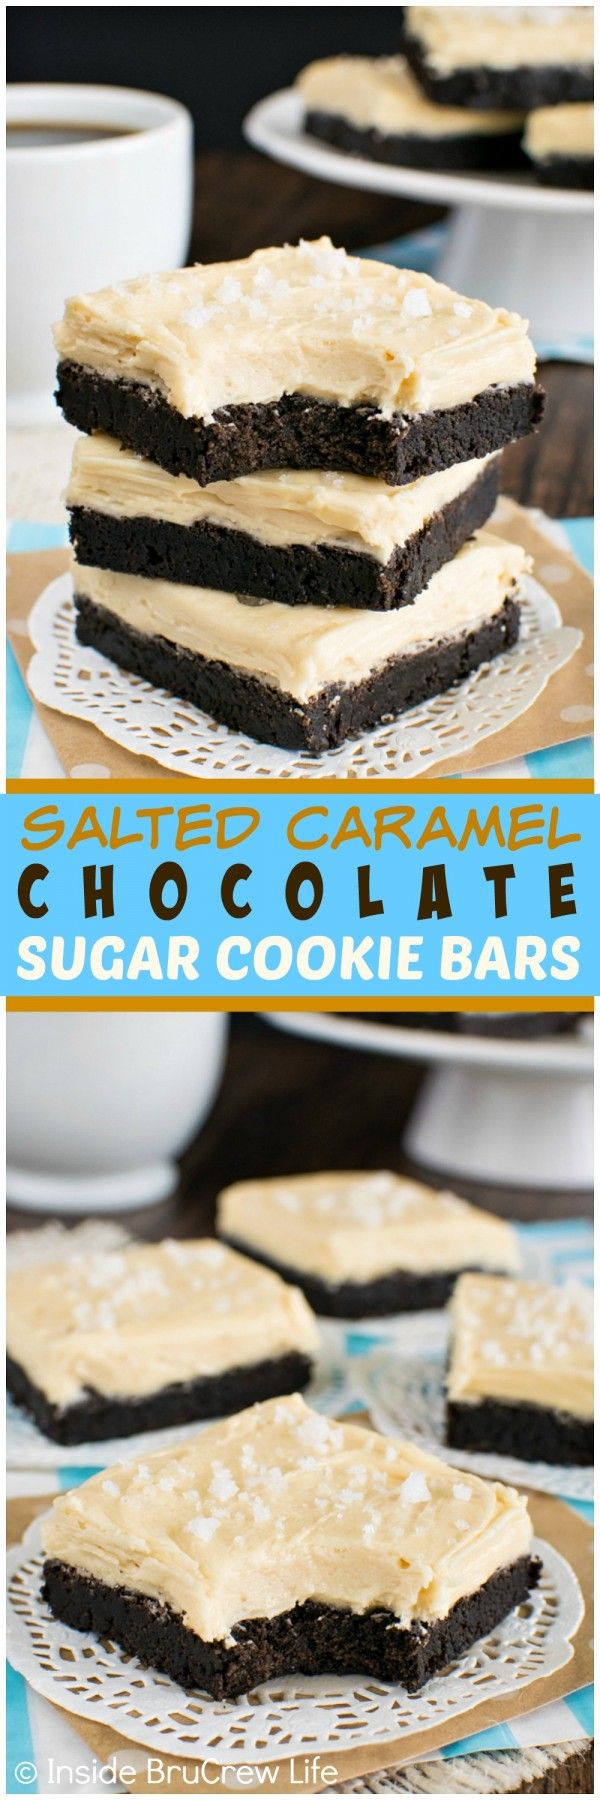 Salted Caramel Chocolate Sugar Cookie Bars - these soft chocolate cookies are baked and frosted in one pan!  Great easy dessert recipe!!!